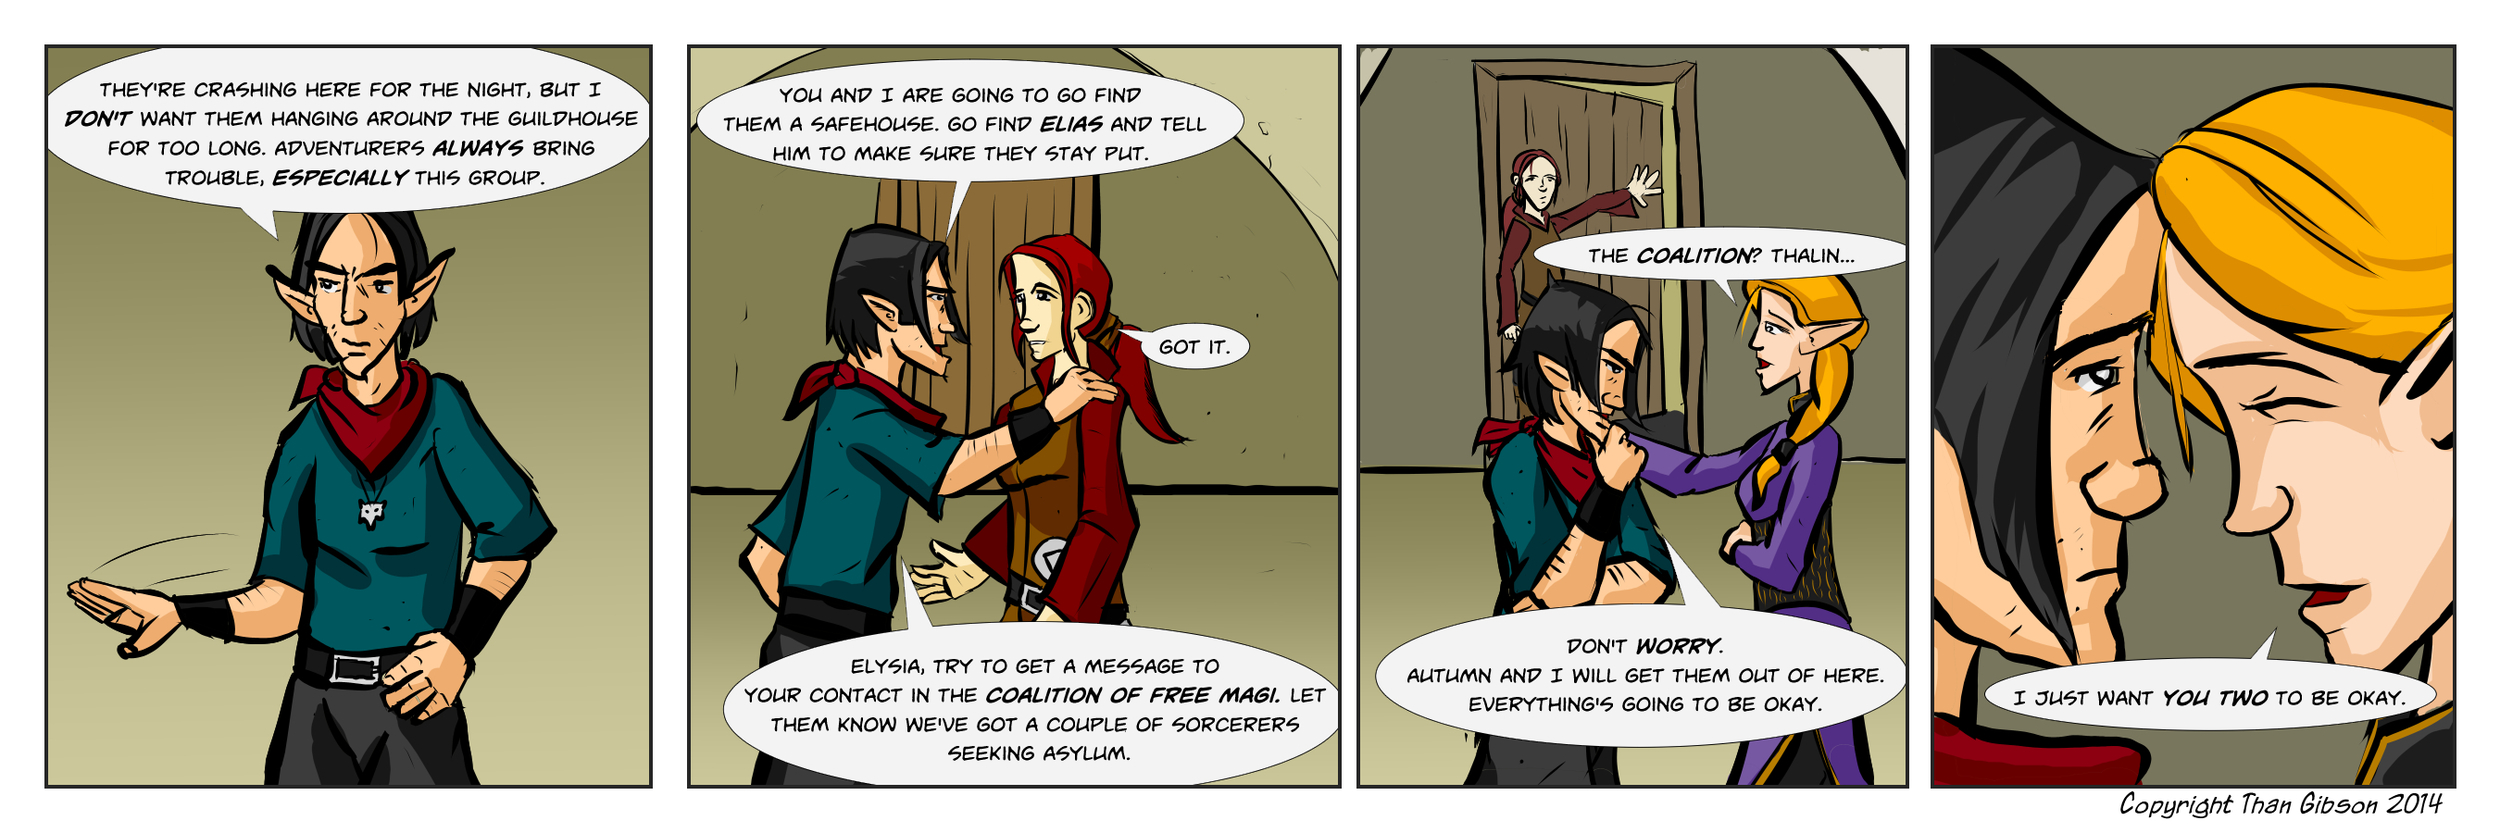 Strip 15 -Click the image for a larger view!